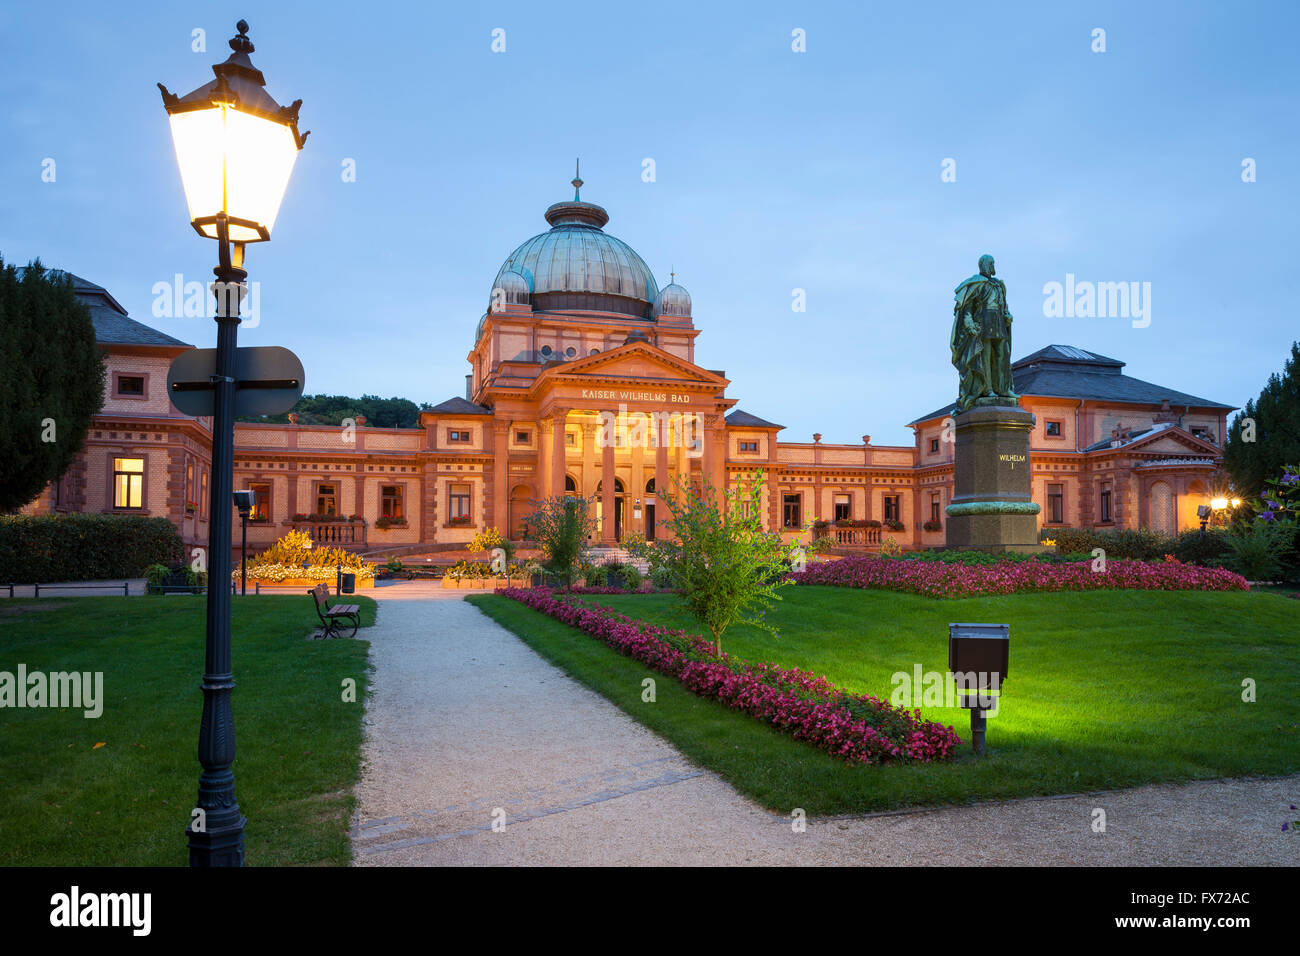 Bad Homburg Kaiser Wilhelms Bad Spa Garden Bad Homburg Hesse Germany